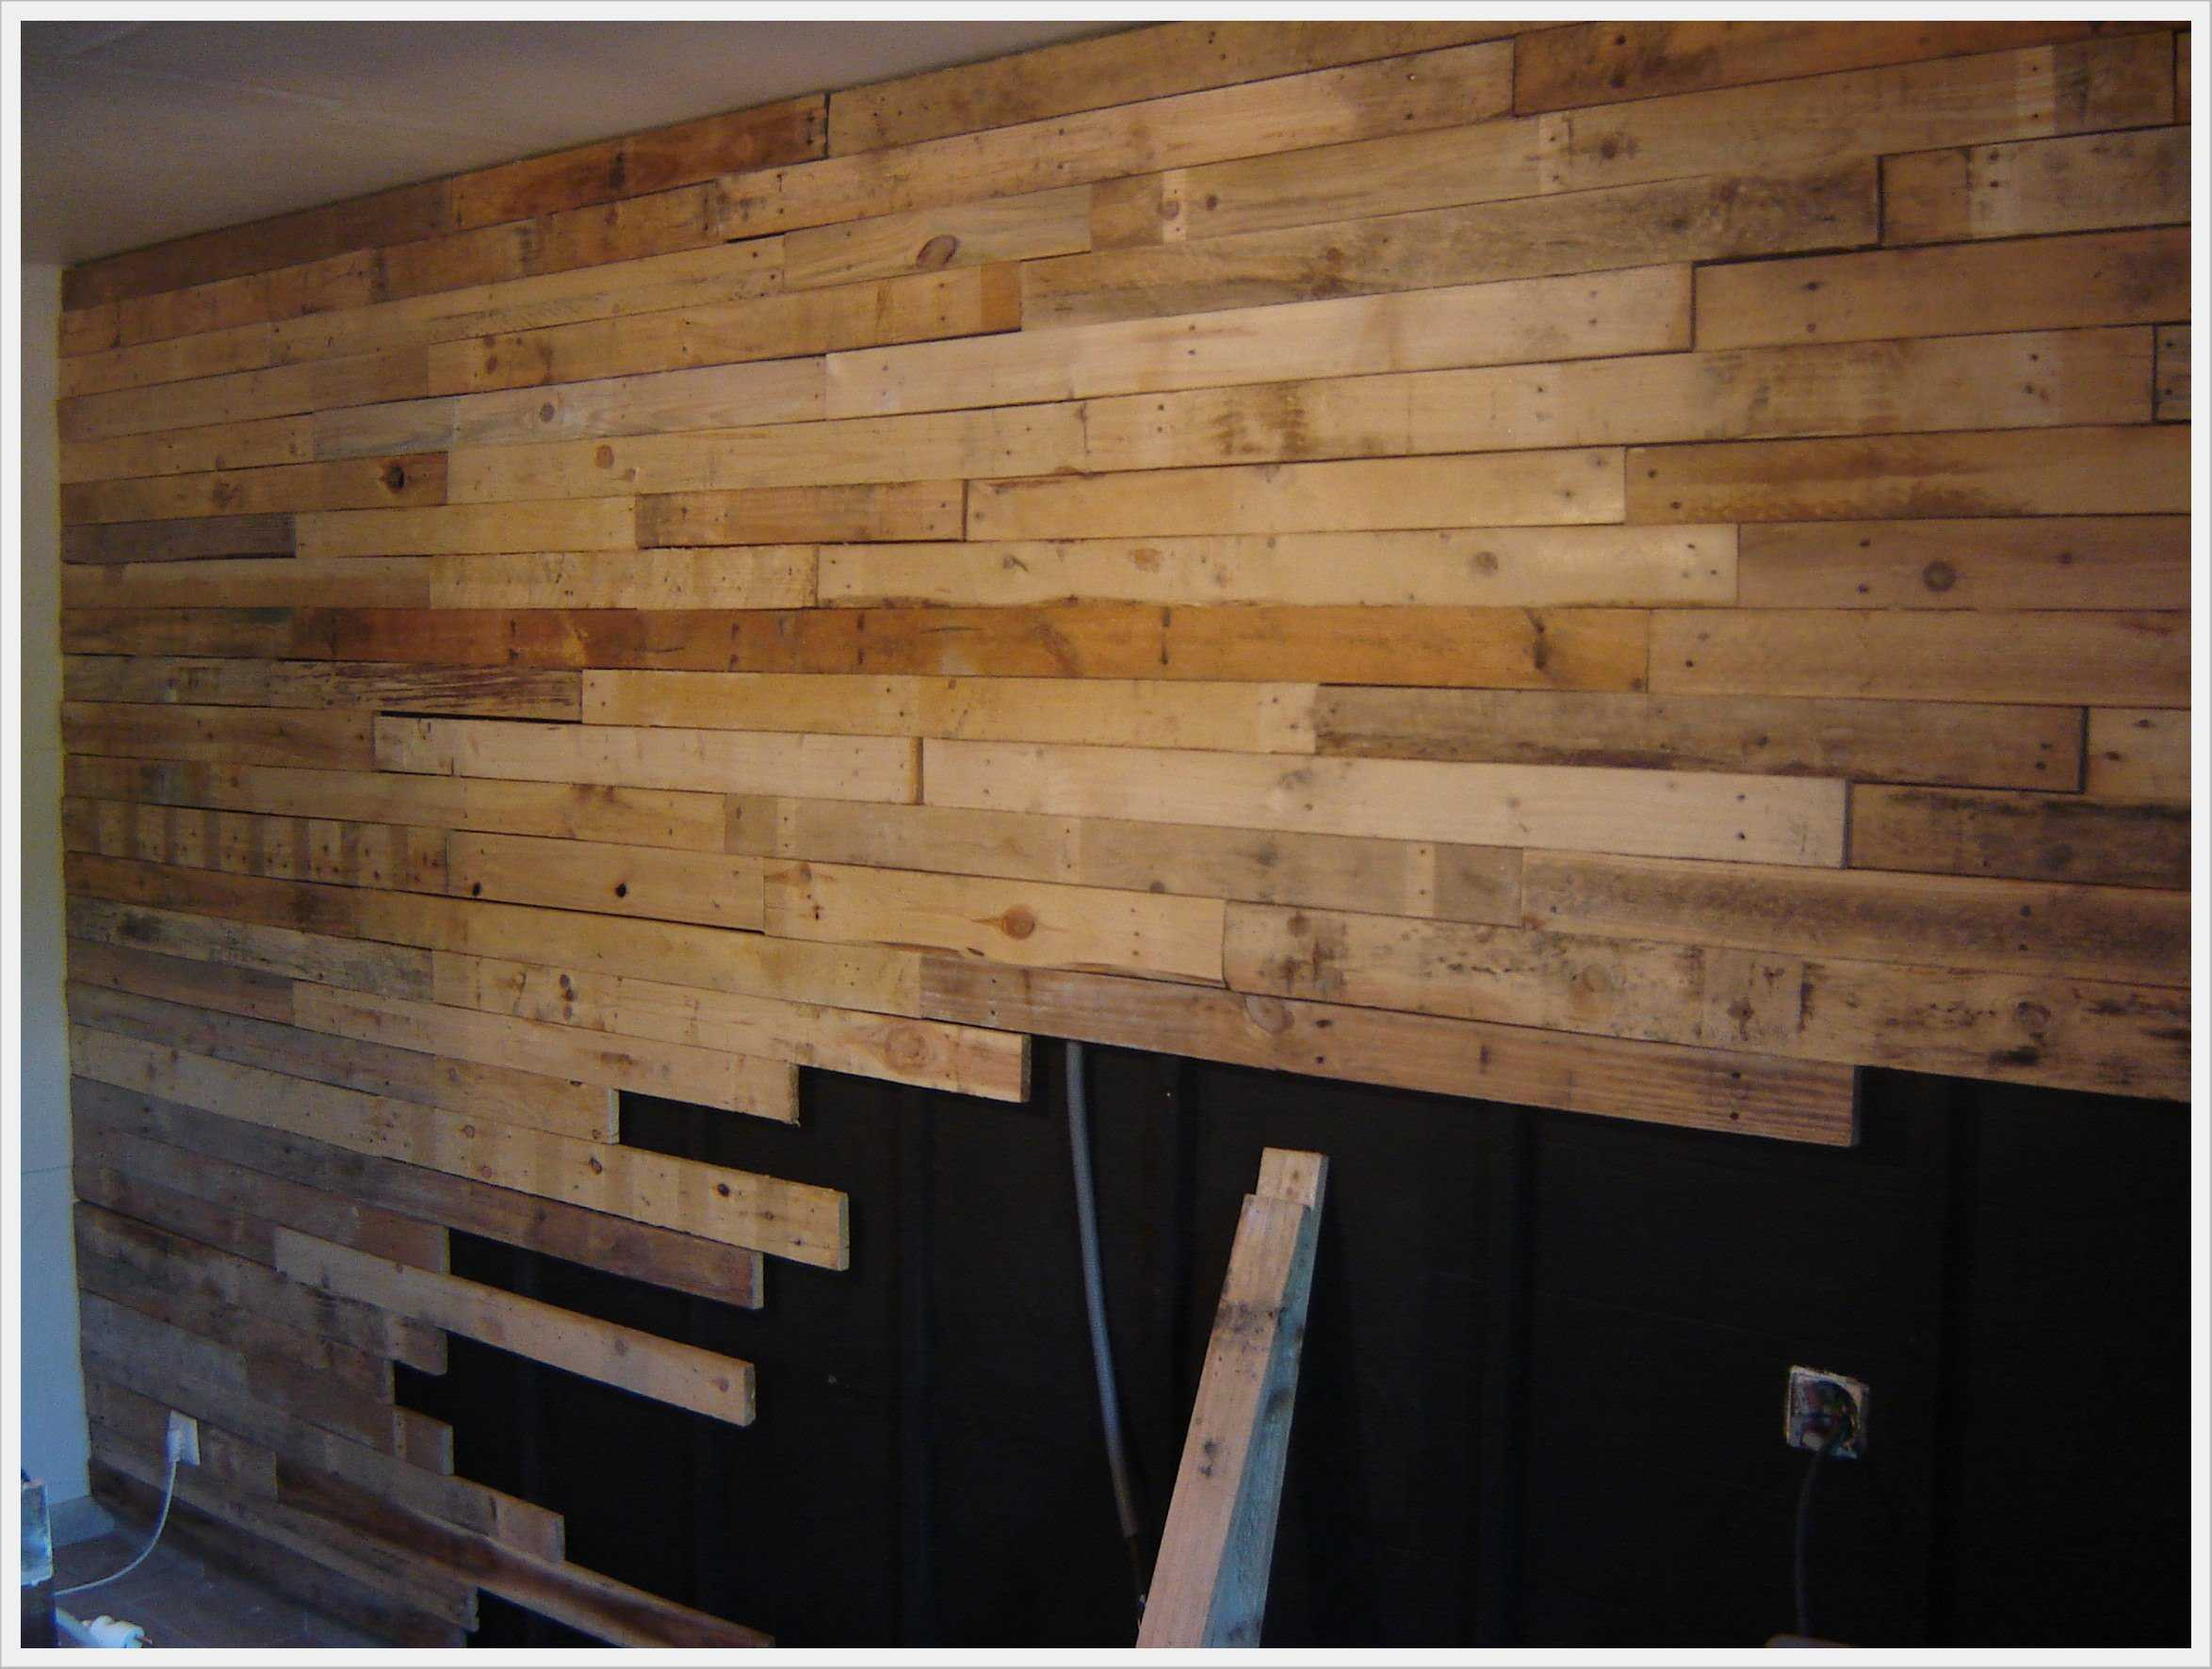 R 233 alisation d un mur en planches de palettes wall made out of 120